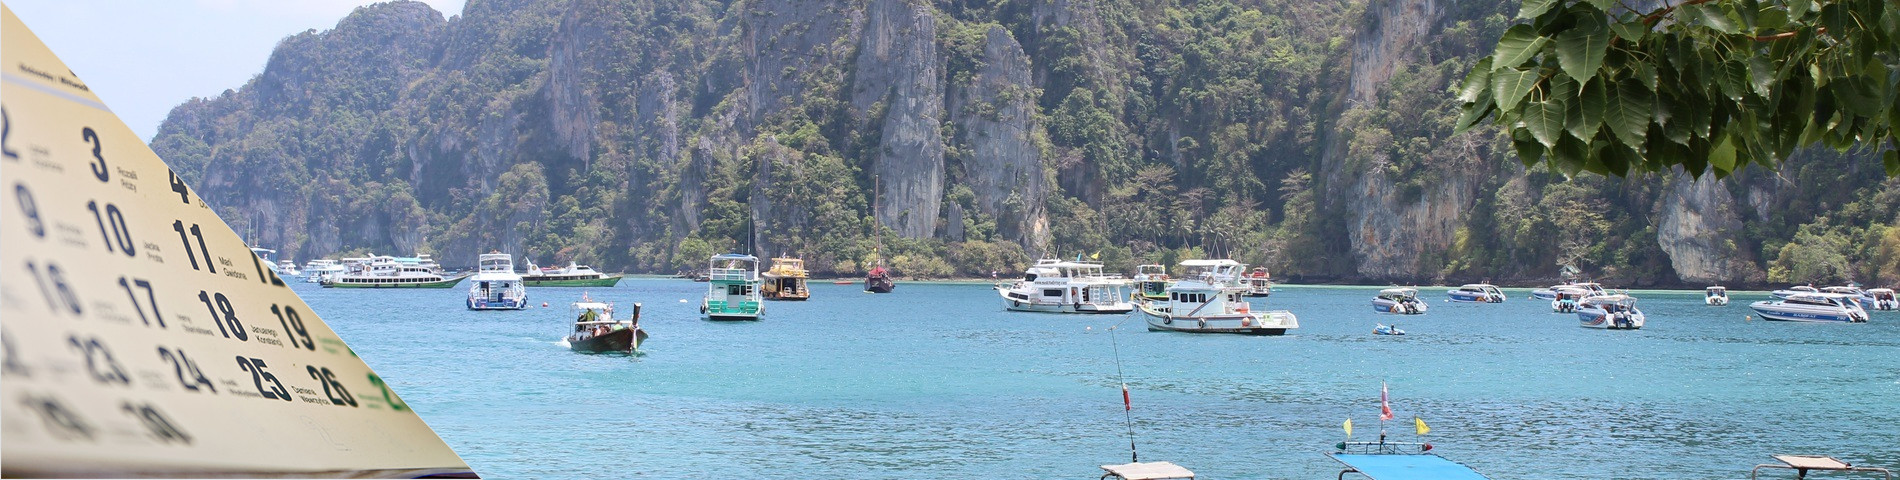 Phuket - Tailandese annuale